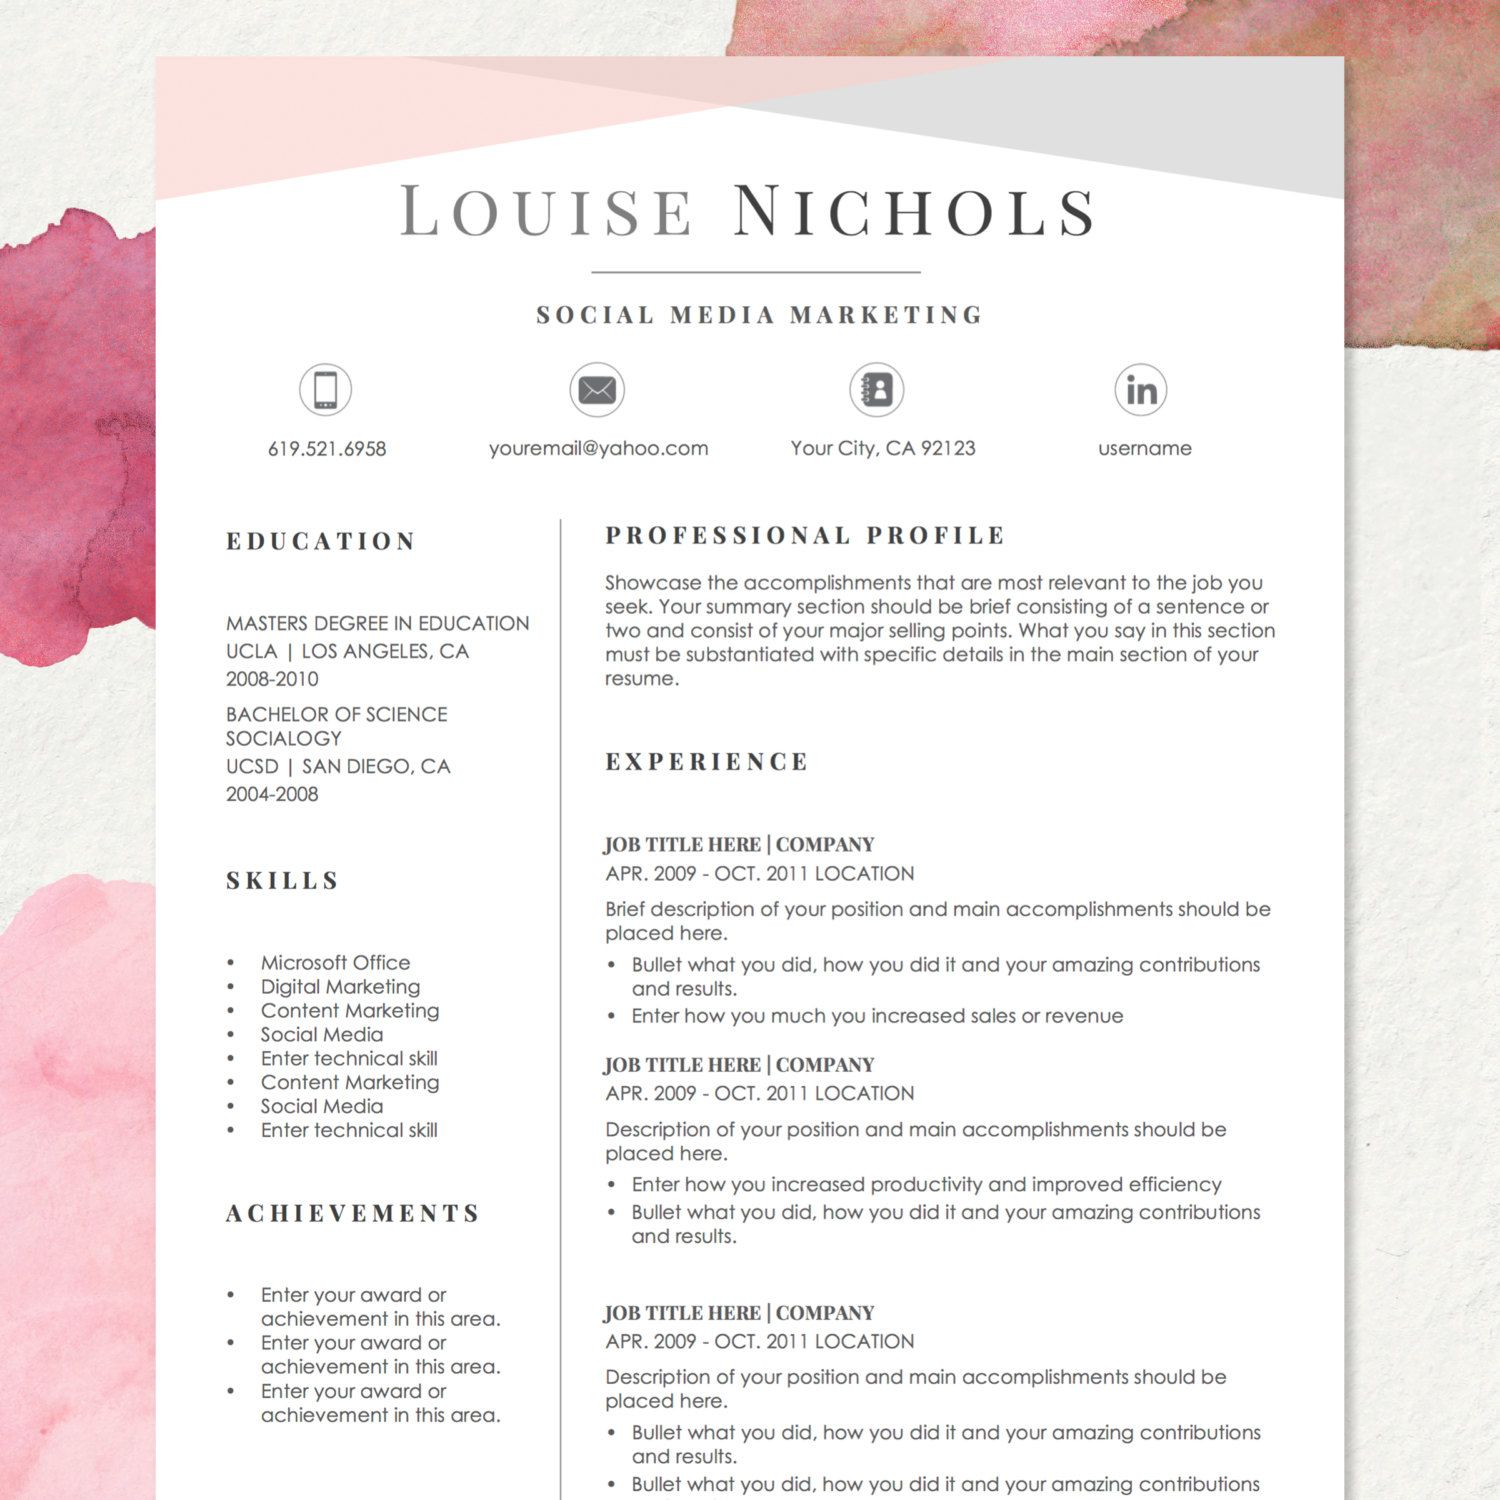 Resume Template For Ms Word Louise 1 2 Page Resume Etsy Downloadable Resume Template Cover Letter For Resume Resume Template